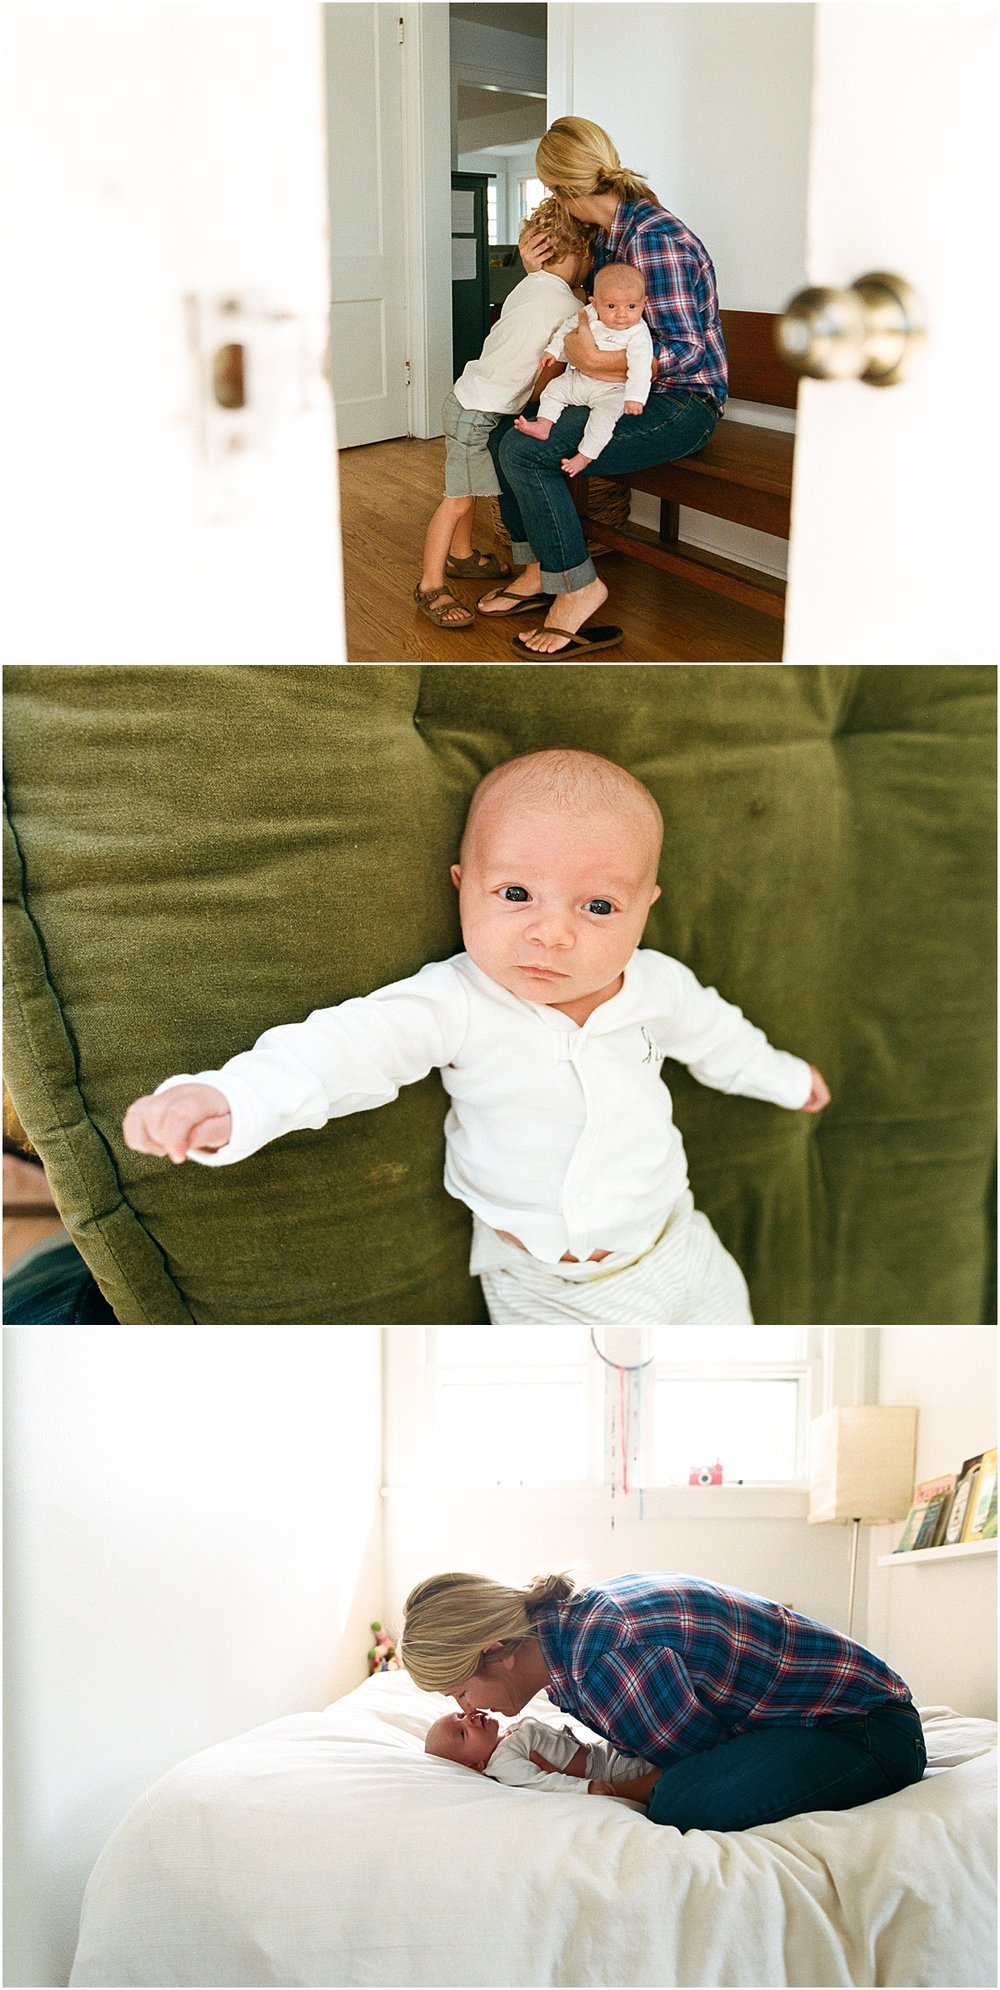 ©MariaManco Photography Family Session at Home on Film 7